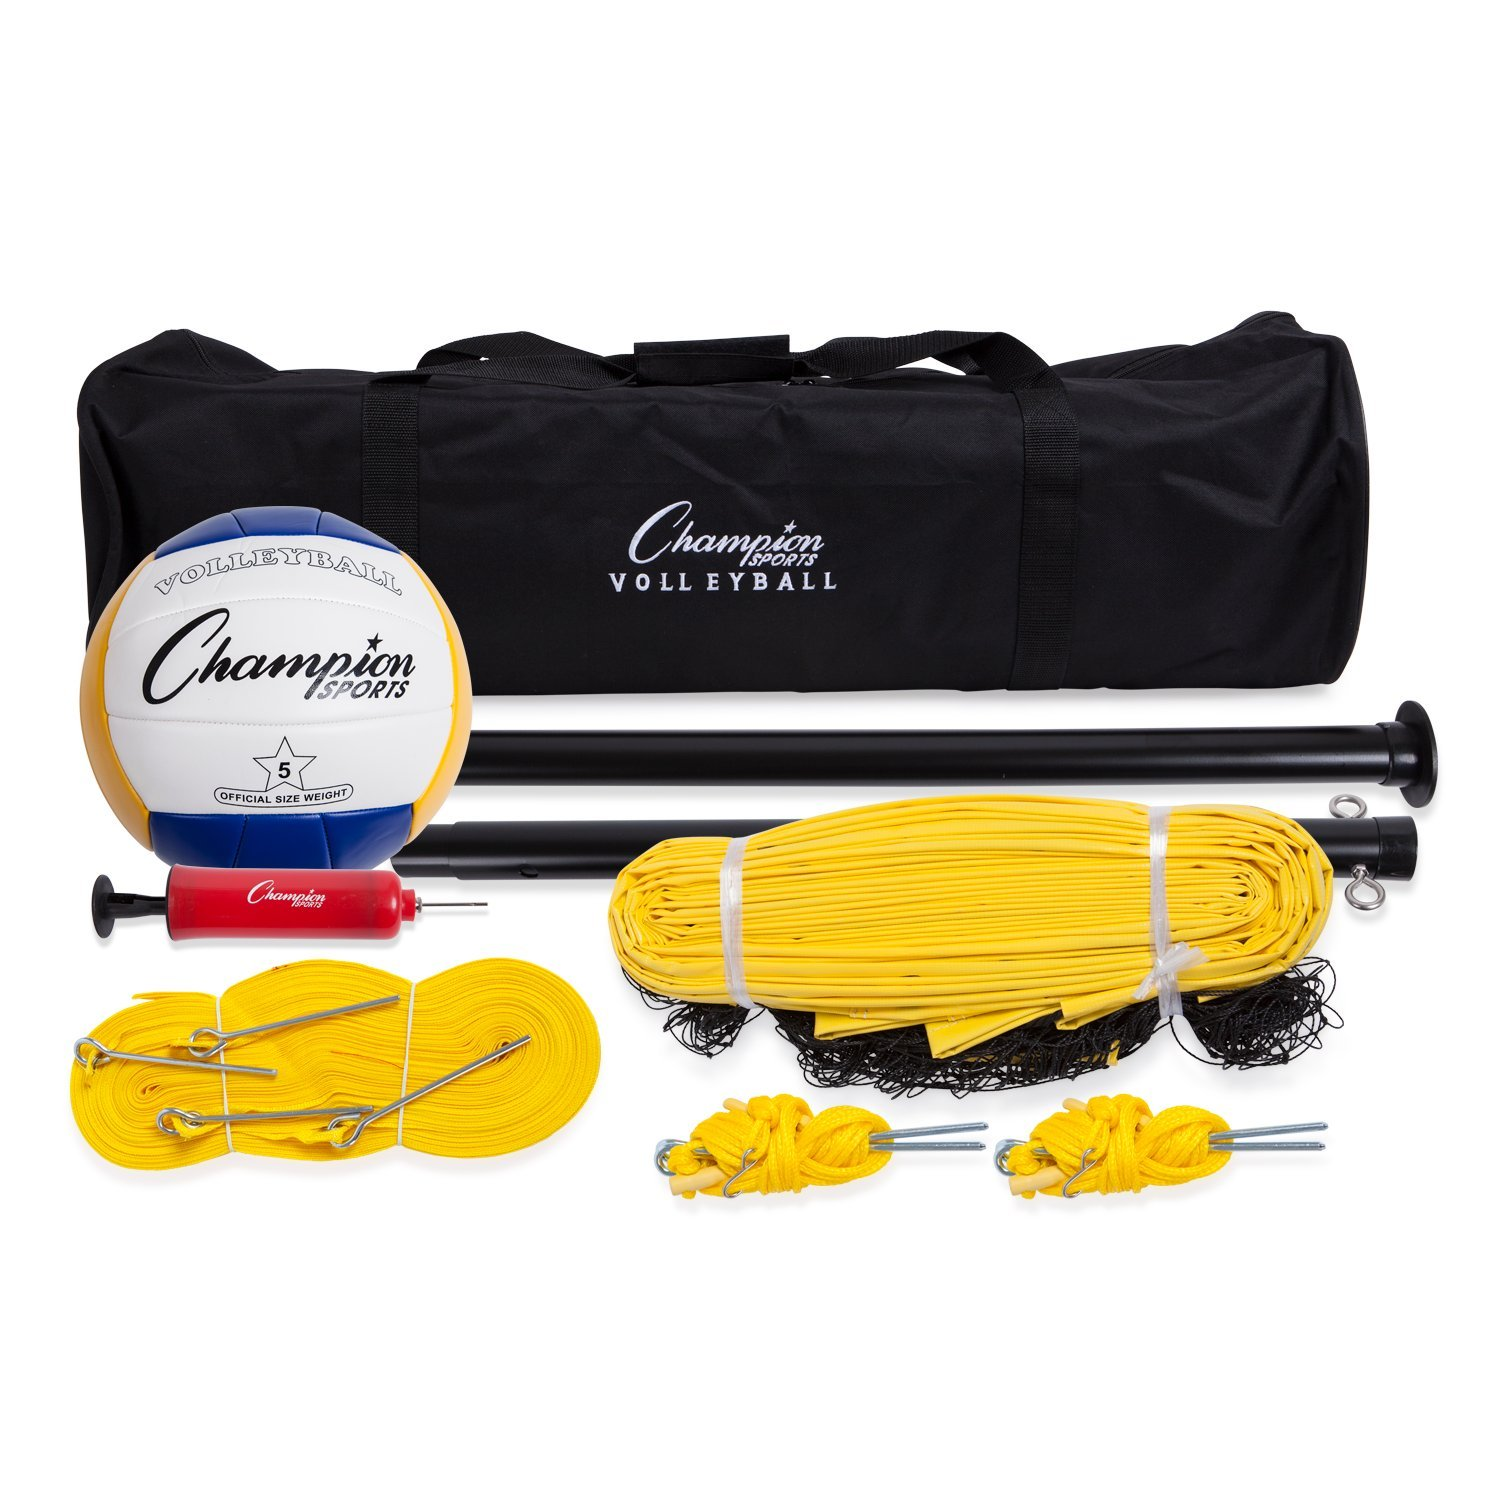 Champion Sports Outdoor Volleyball Set: Complete Portable Team Sports Set with Net, Poles, Ball & Accessories for Lawn, Beach, Club & Tournament Games